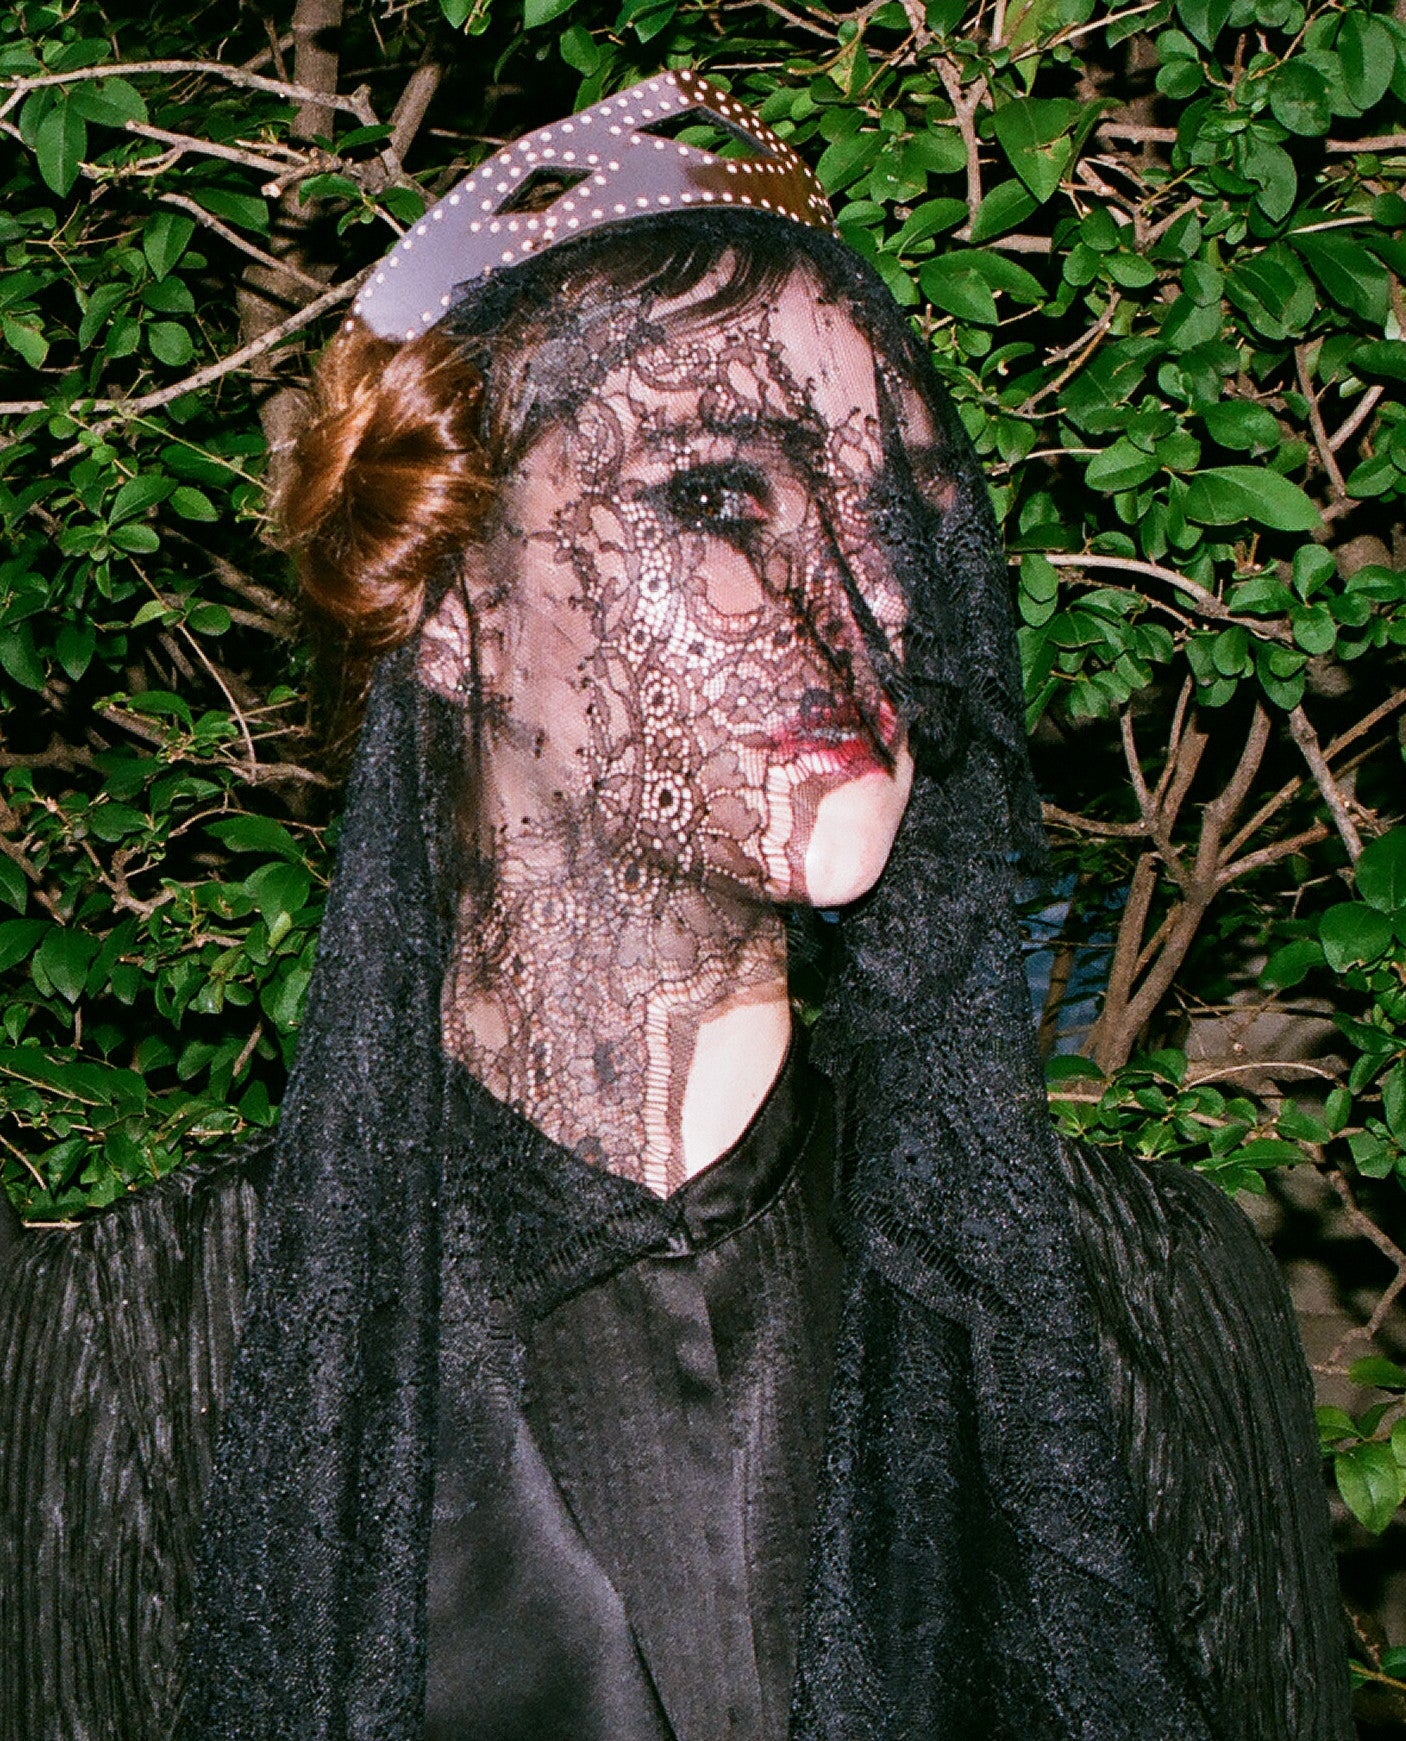 Aliana Ali Lohan Model Lindsay Lohan Sister Wendy Nichol First Fashion Show Saints of the Zodiac Astrology Sign Taurus Bullfighter Matador outfit Torero Metallic Copper Crown Gothic Victorian Edwardian Cropped Jacket Bolero High Waist Waisted Silk Skirt Long Train Handmade in NYC New York City Bespoke Made to Measure Custom Tailoring Lace black Veil